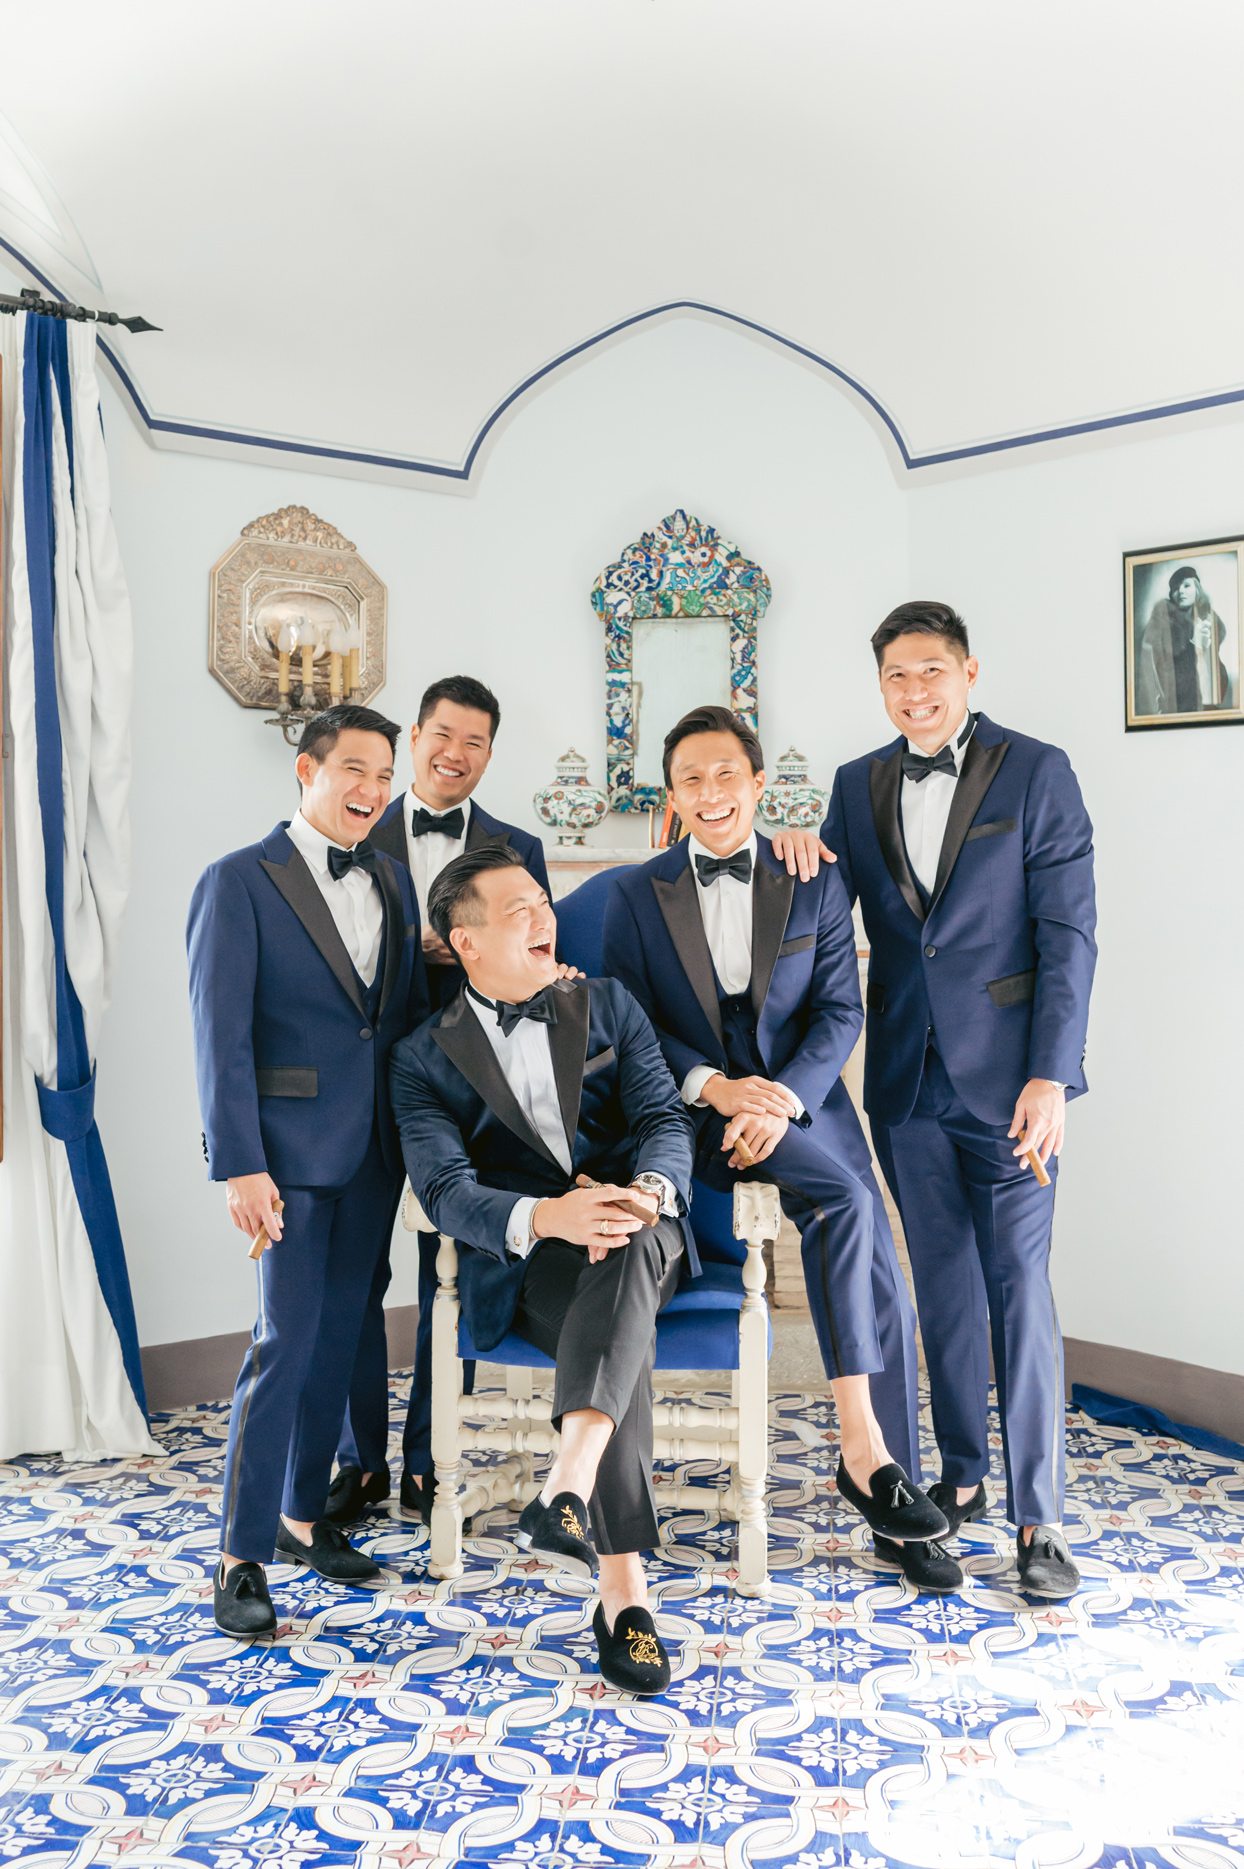 groom smiling with groomsmen wearing navy blue suits